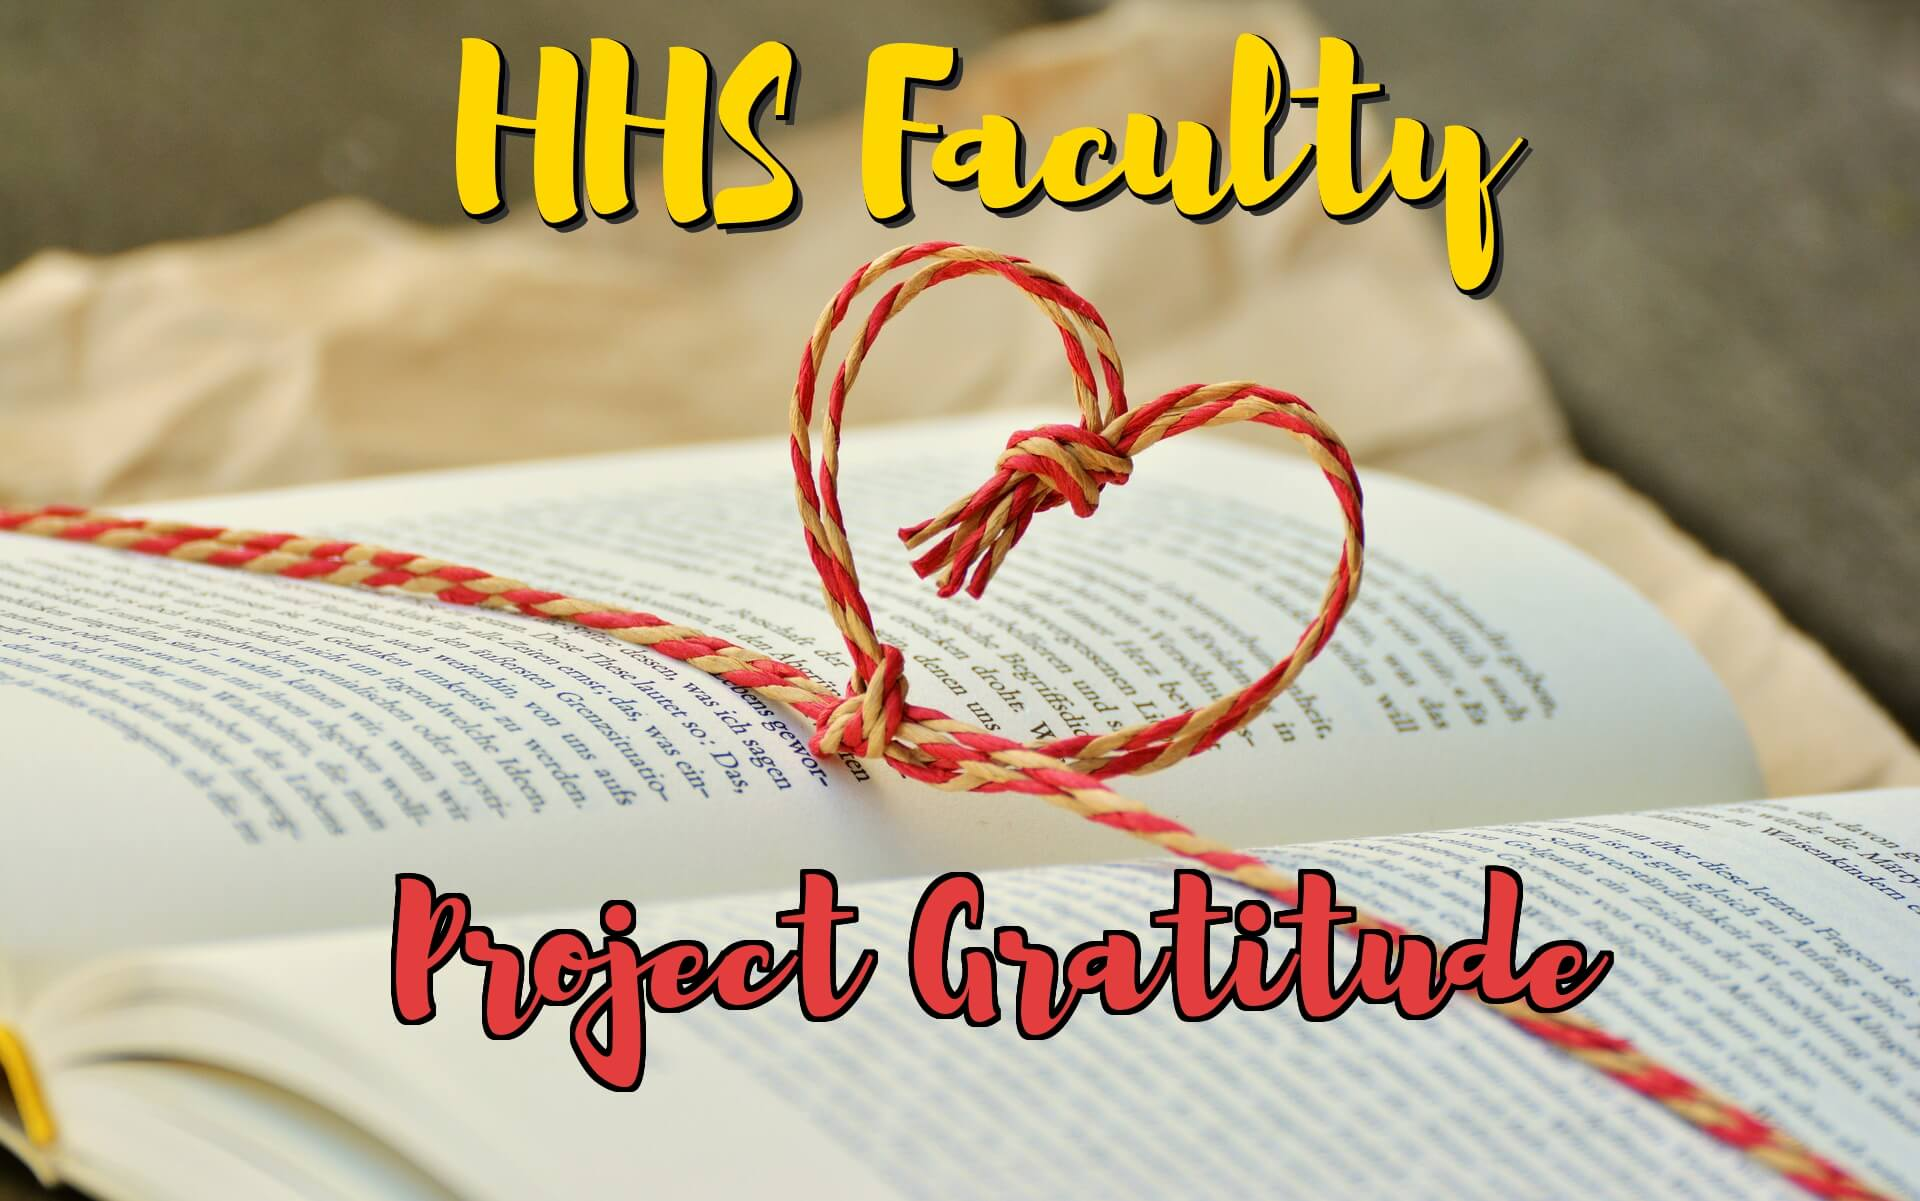 H-Vision offered teachers a chance to express their gratitude to the students who inspire them.